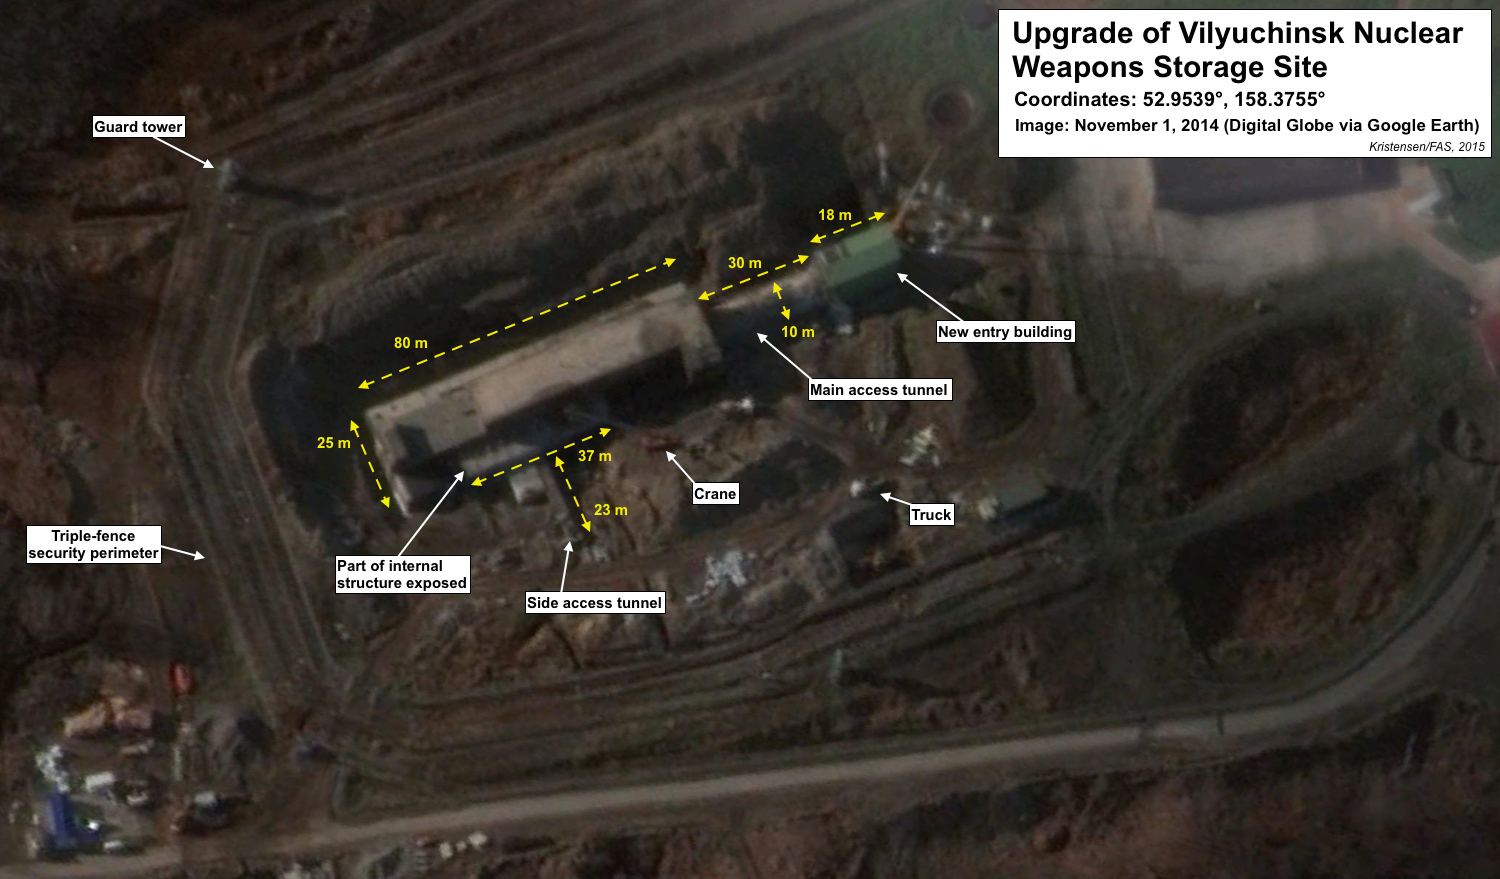 Upgrade of Vilyuchinsk nuclear weapons igloo. Click to see full size image.